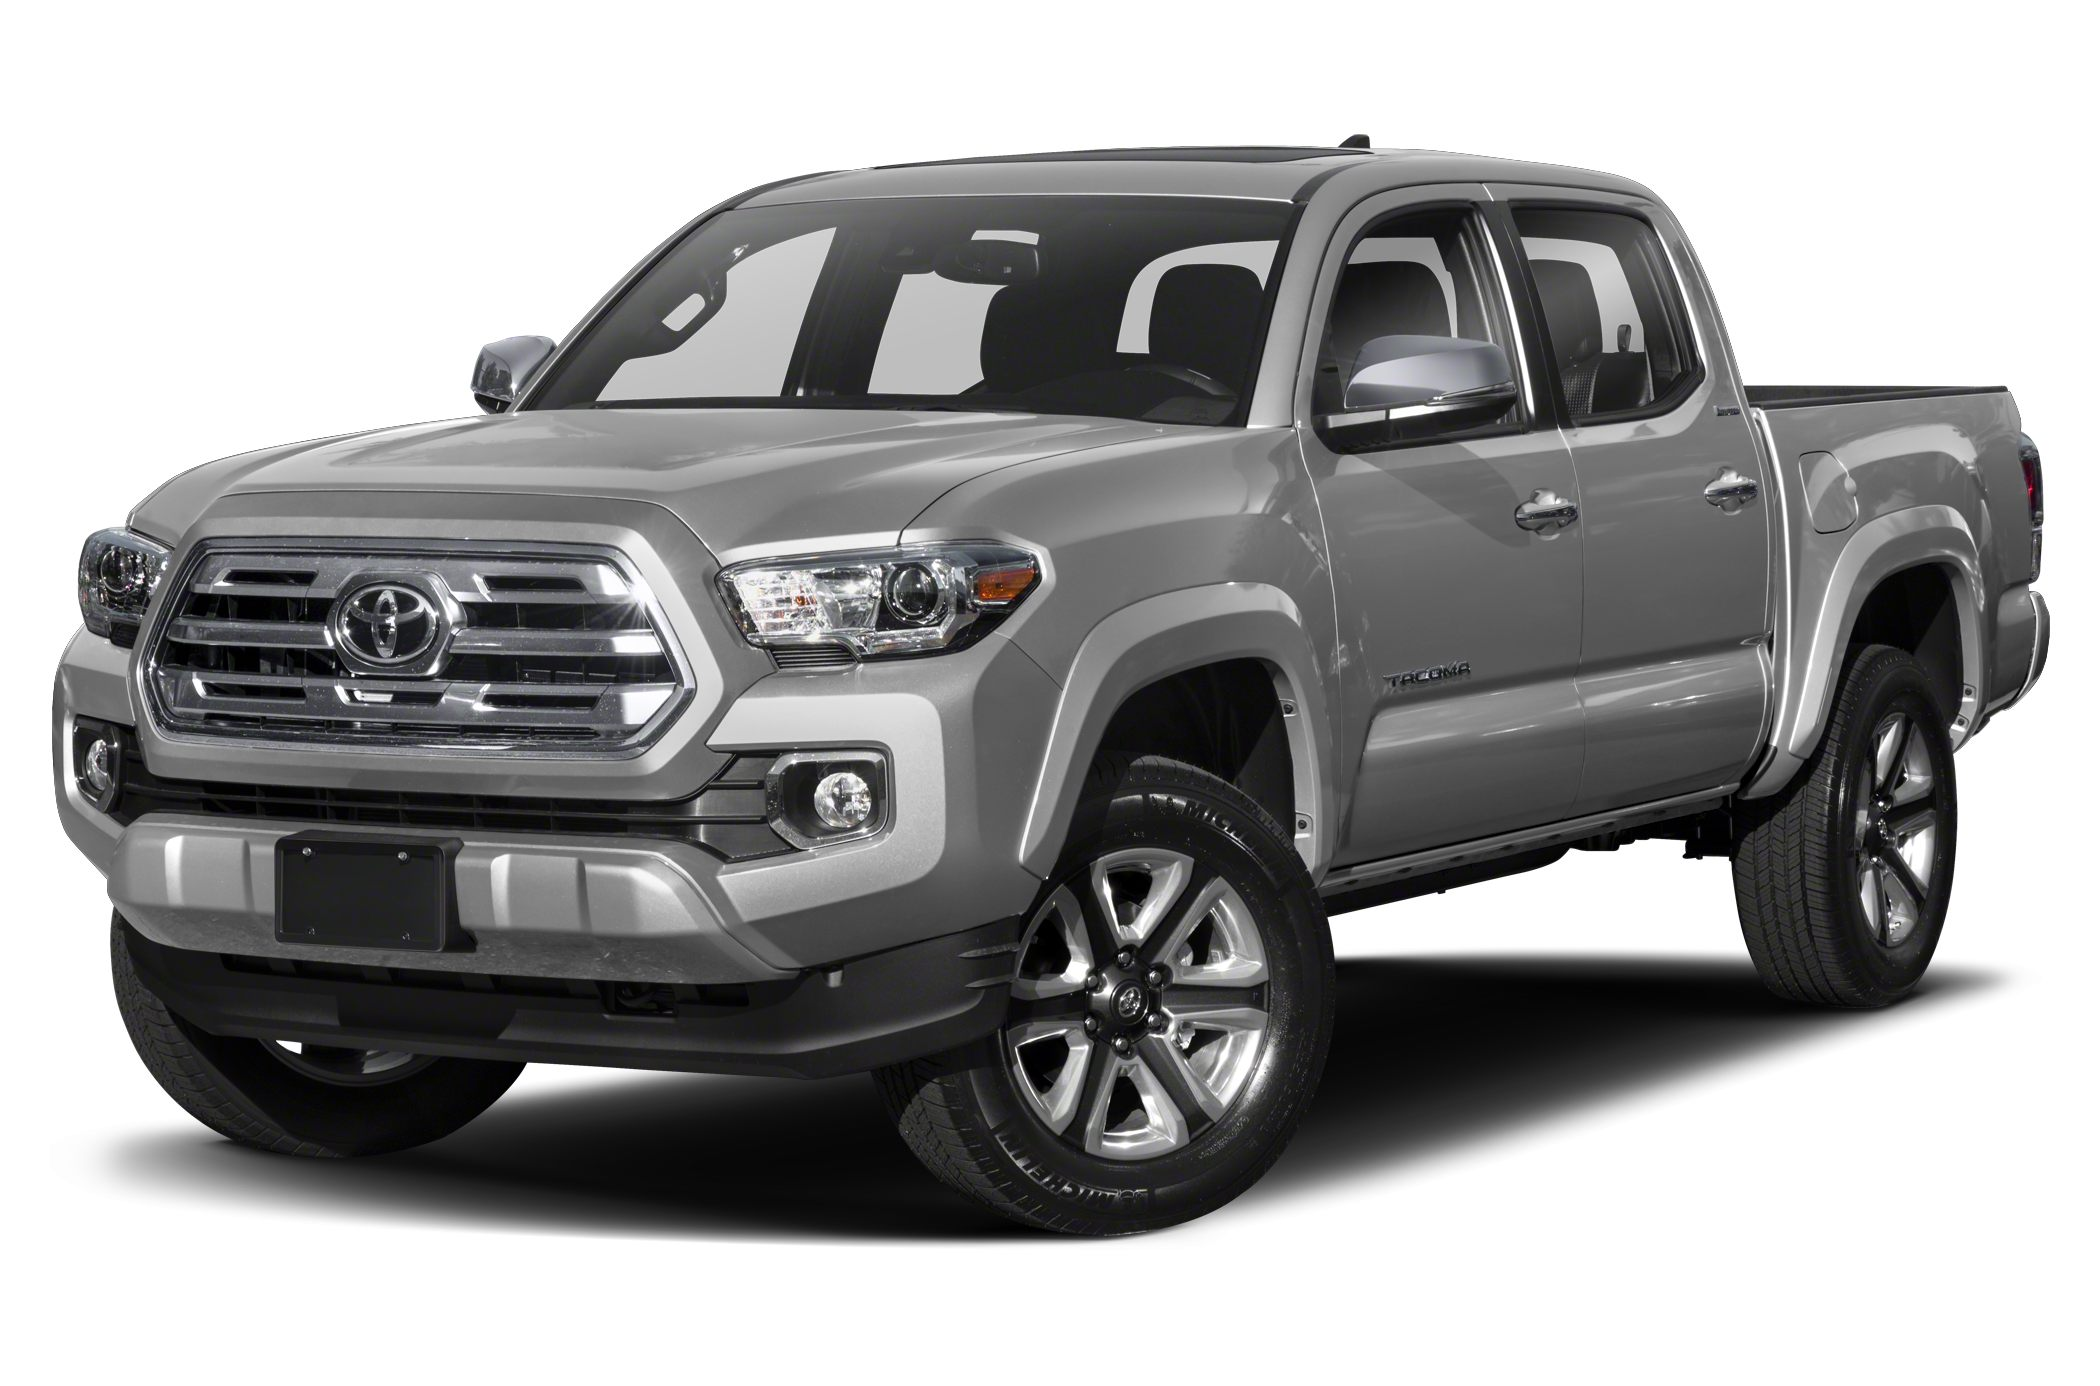 2019 Toyota Tacoma Limited V6 4x4 Double Cab 127.4 in. WB